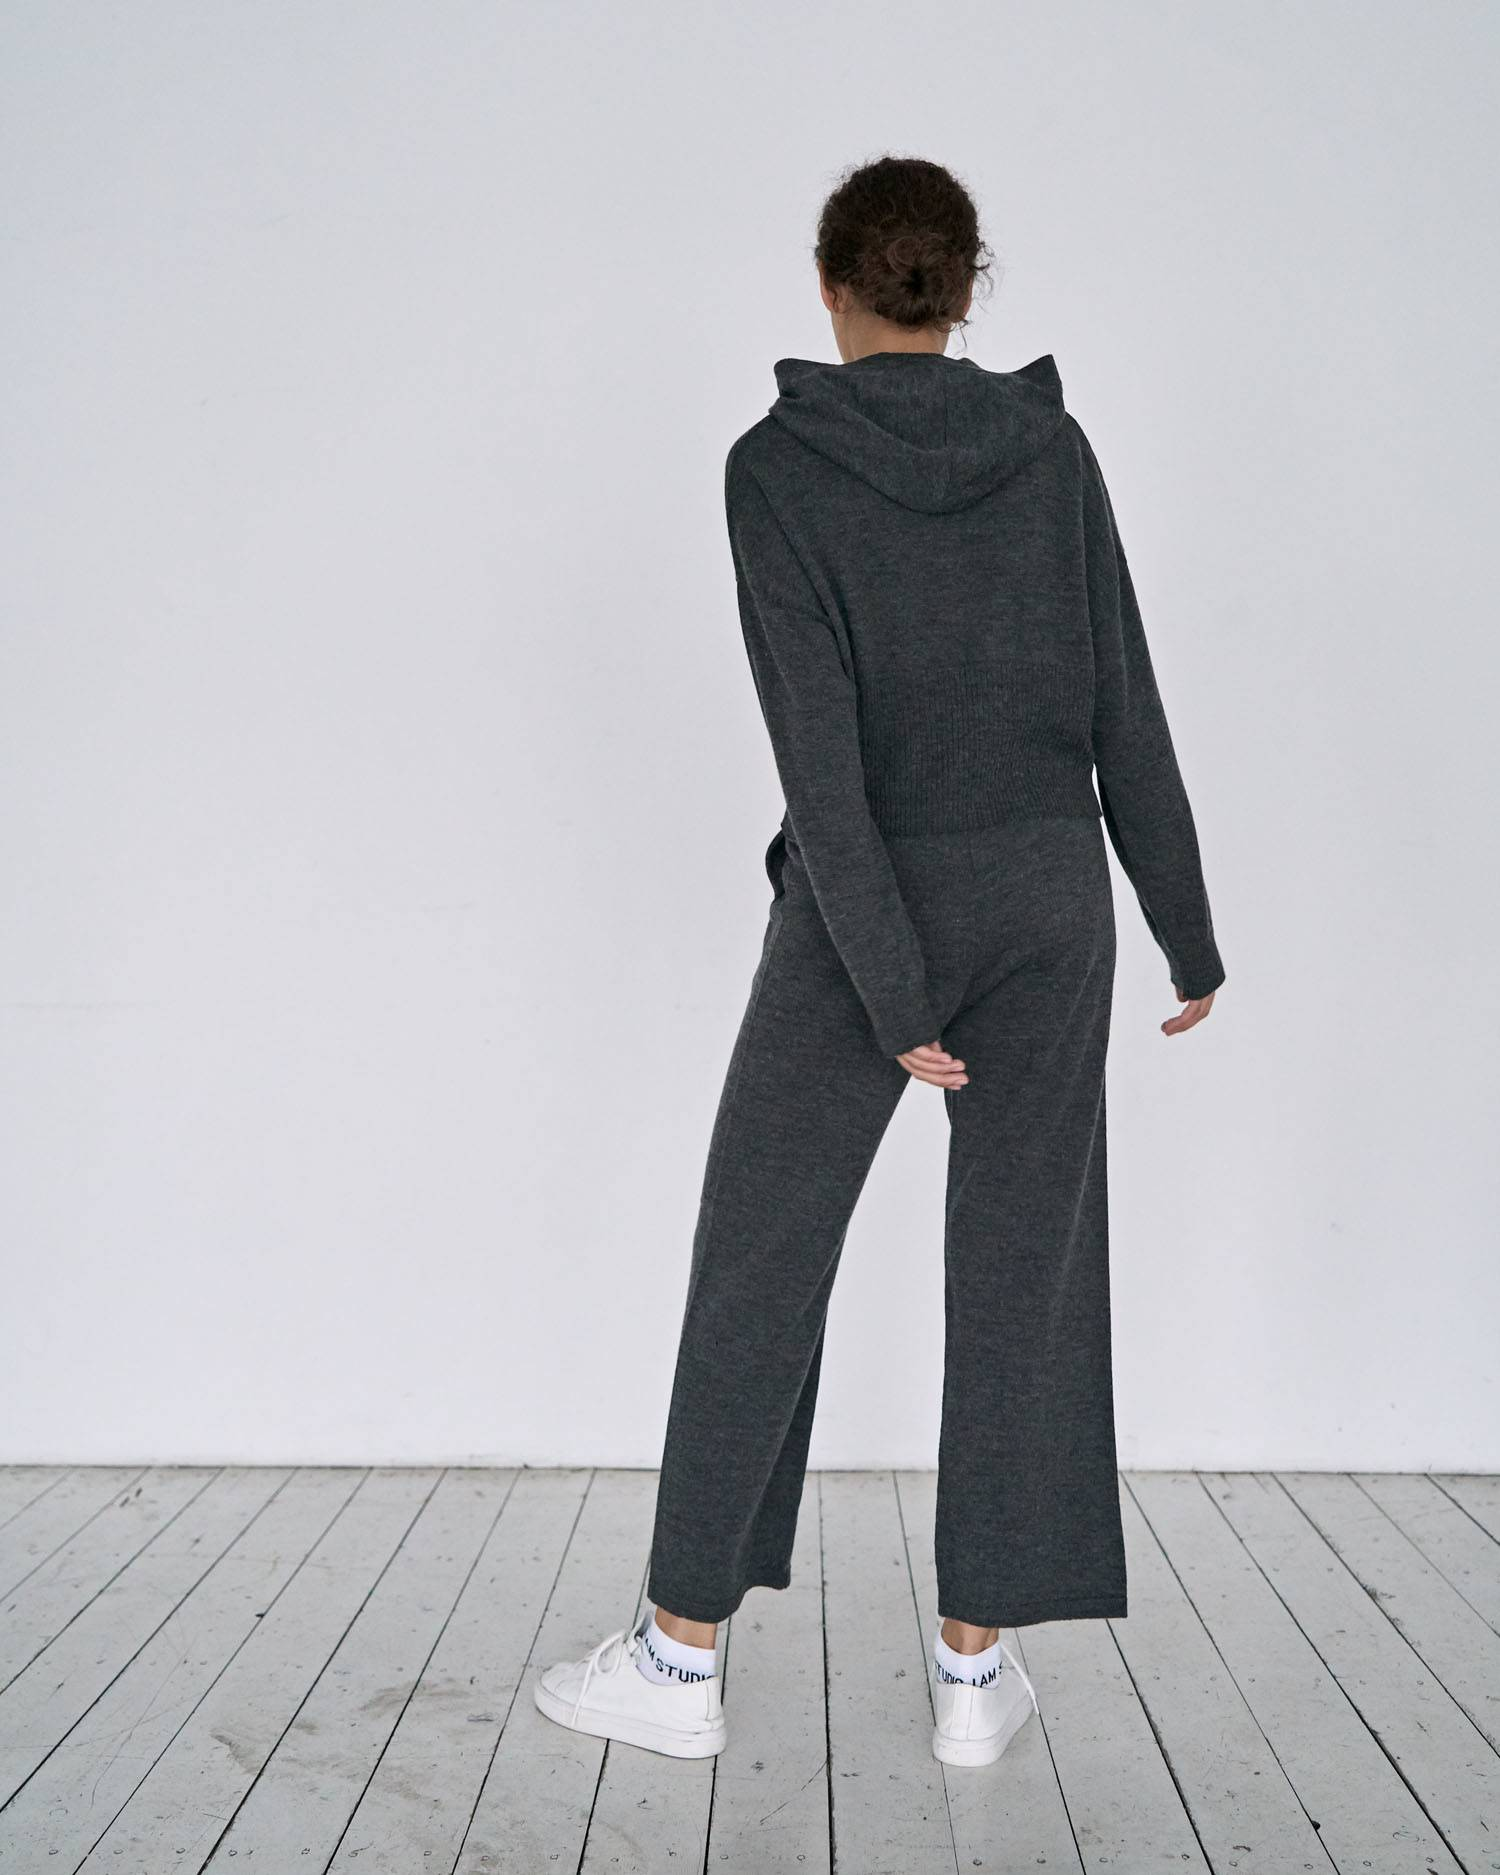 Knit leisure suit